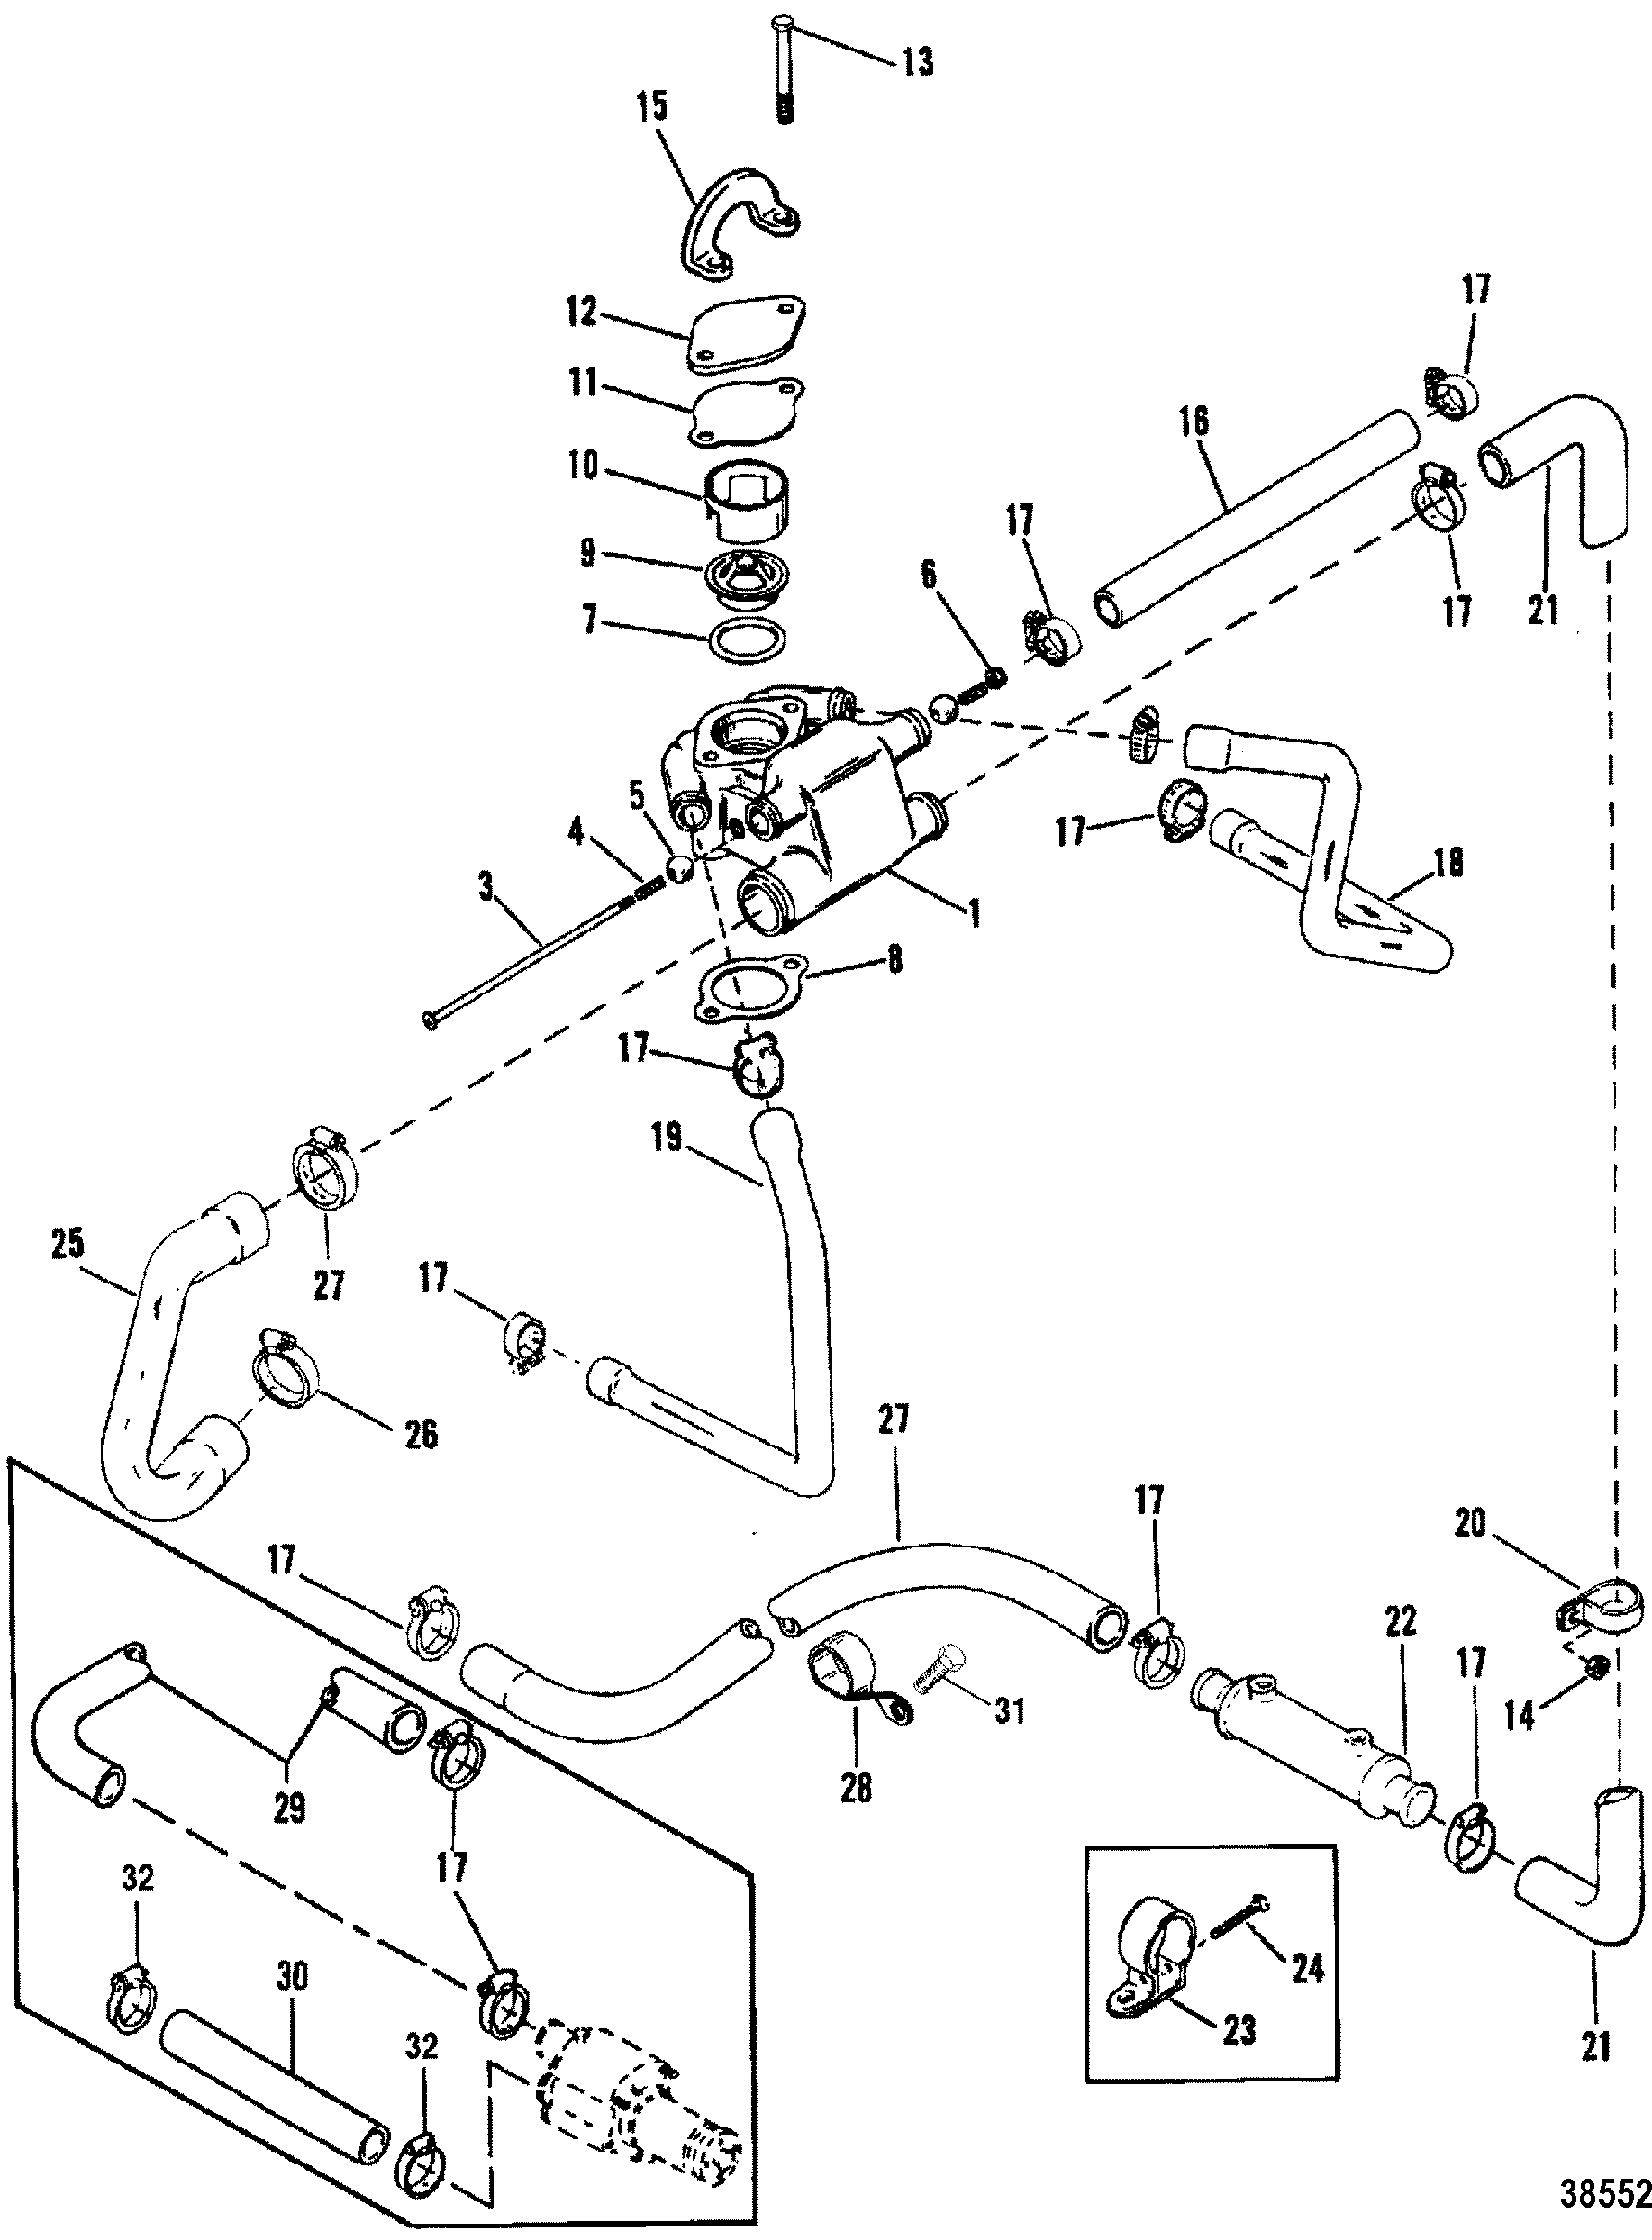 Standard Cooling System Design Ii For Mercruiser 200 5 0l